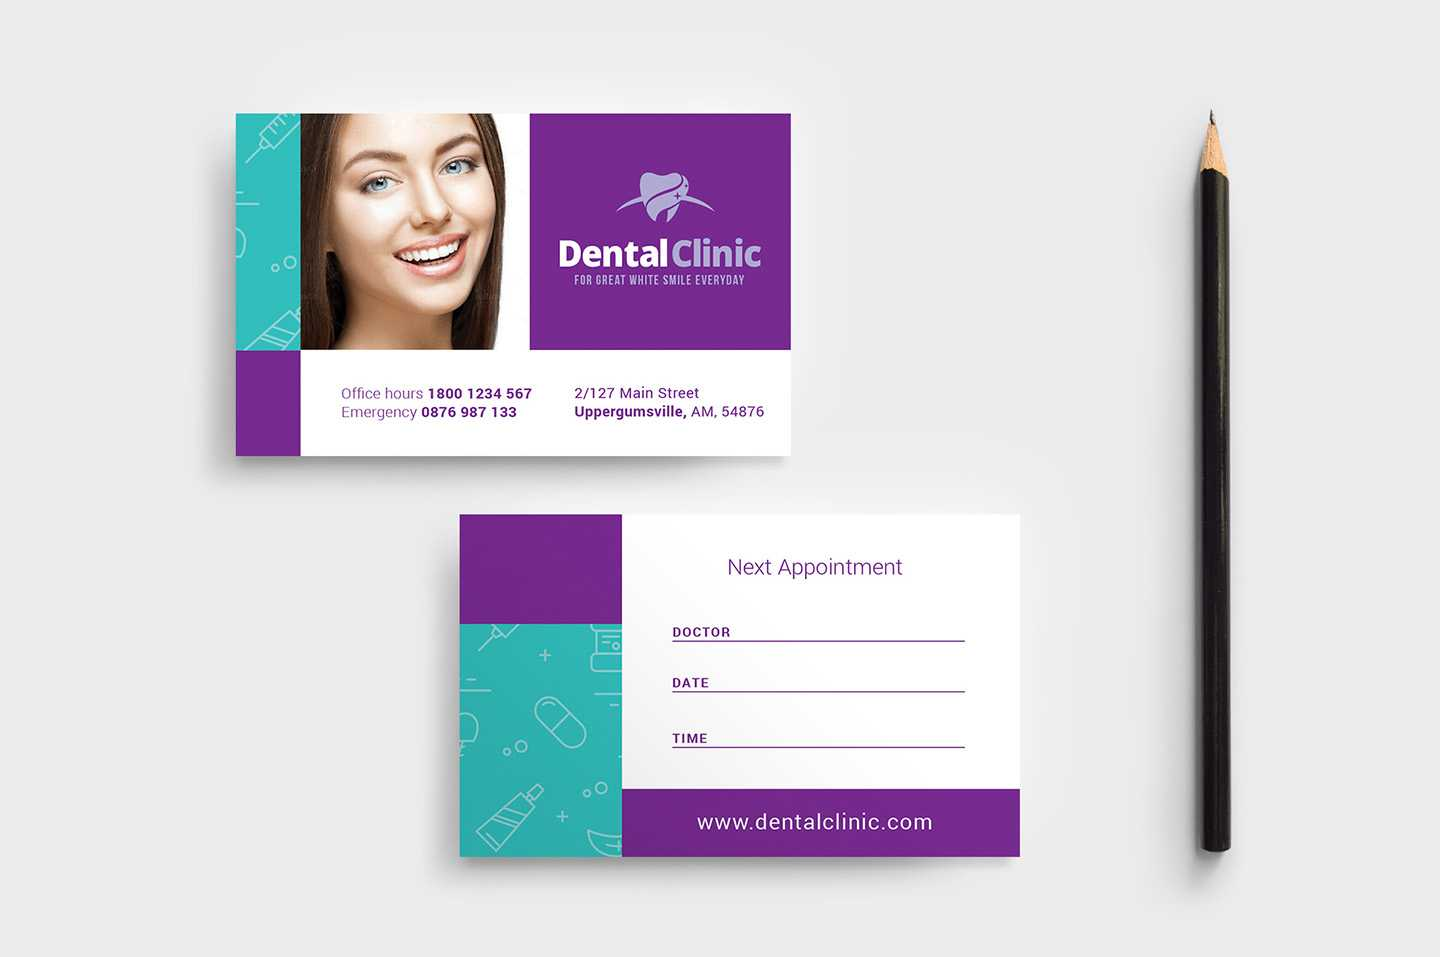 Dental Clinic Appointment Card Template In Psd, Ai & Vector For Dentist Appointment Card Template